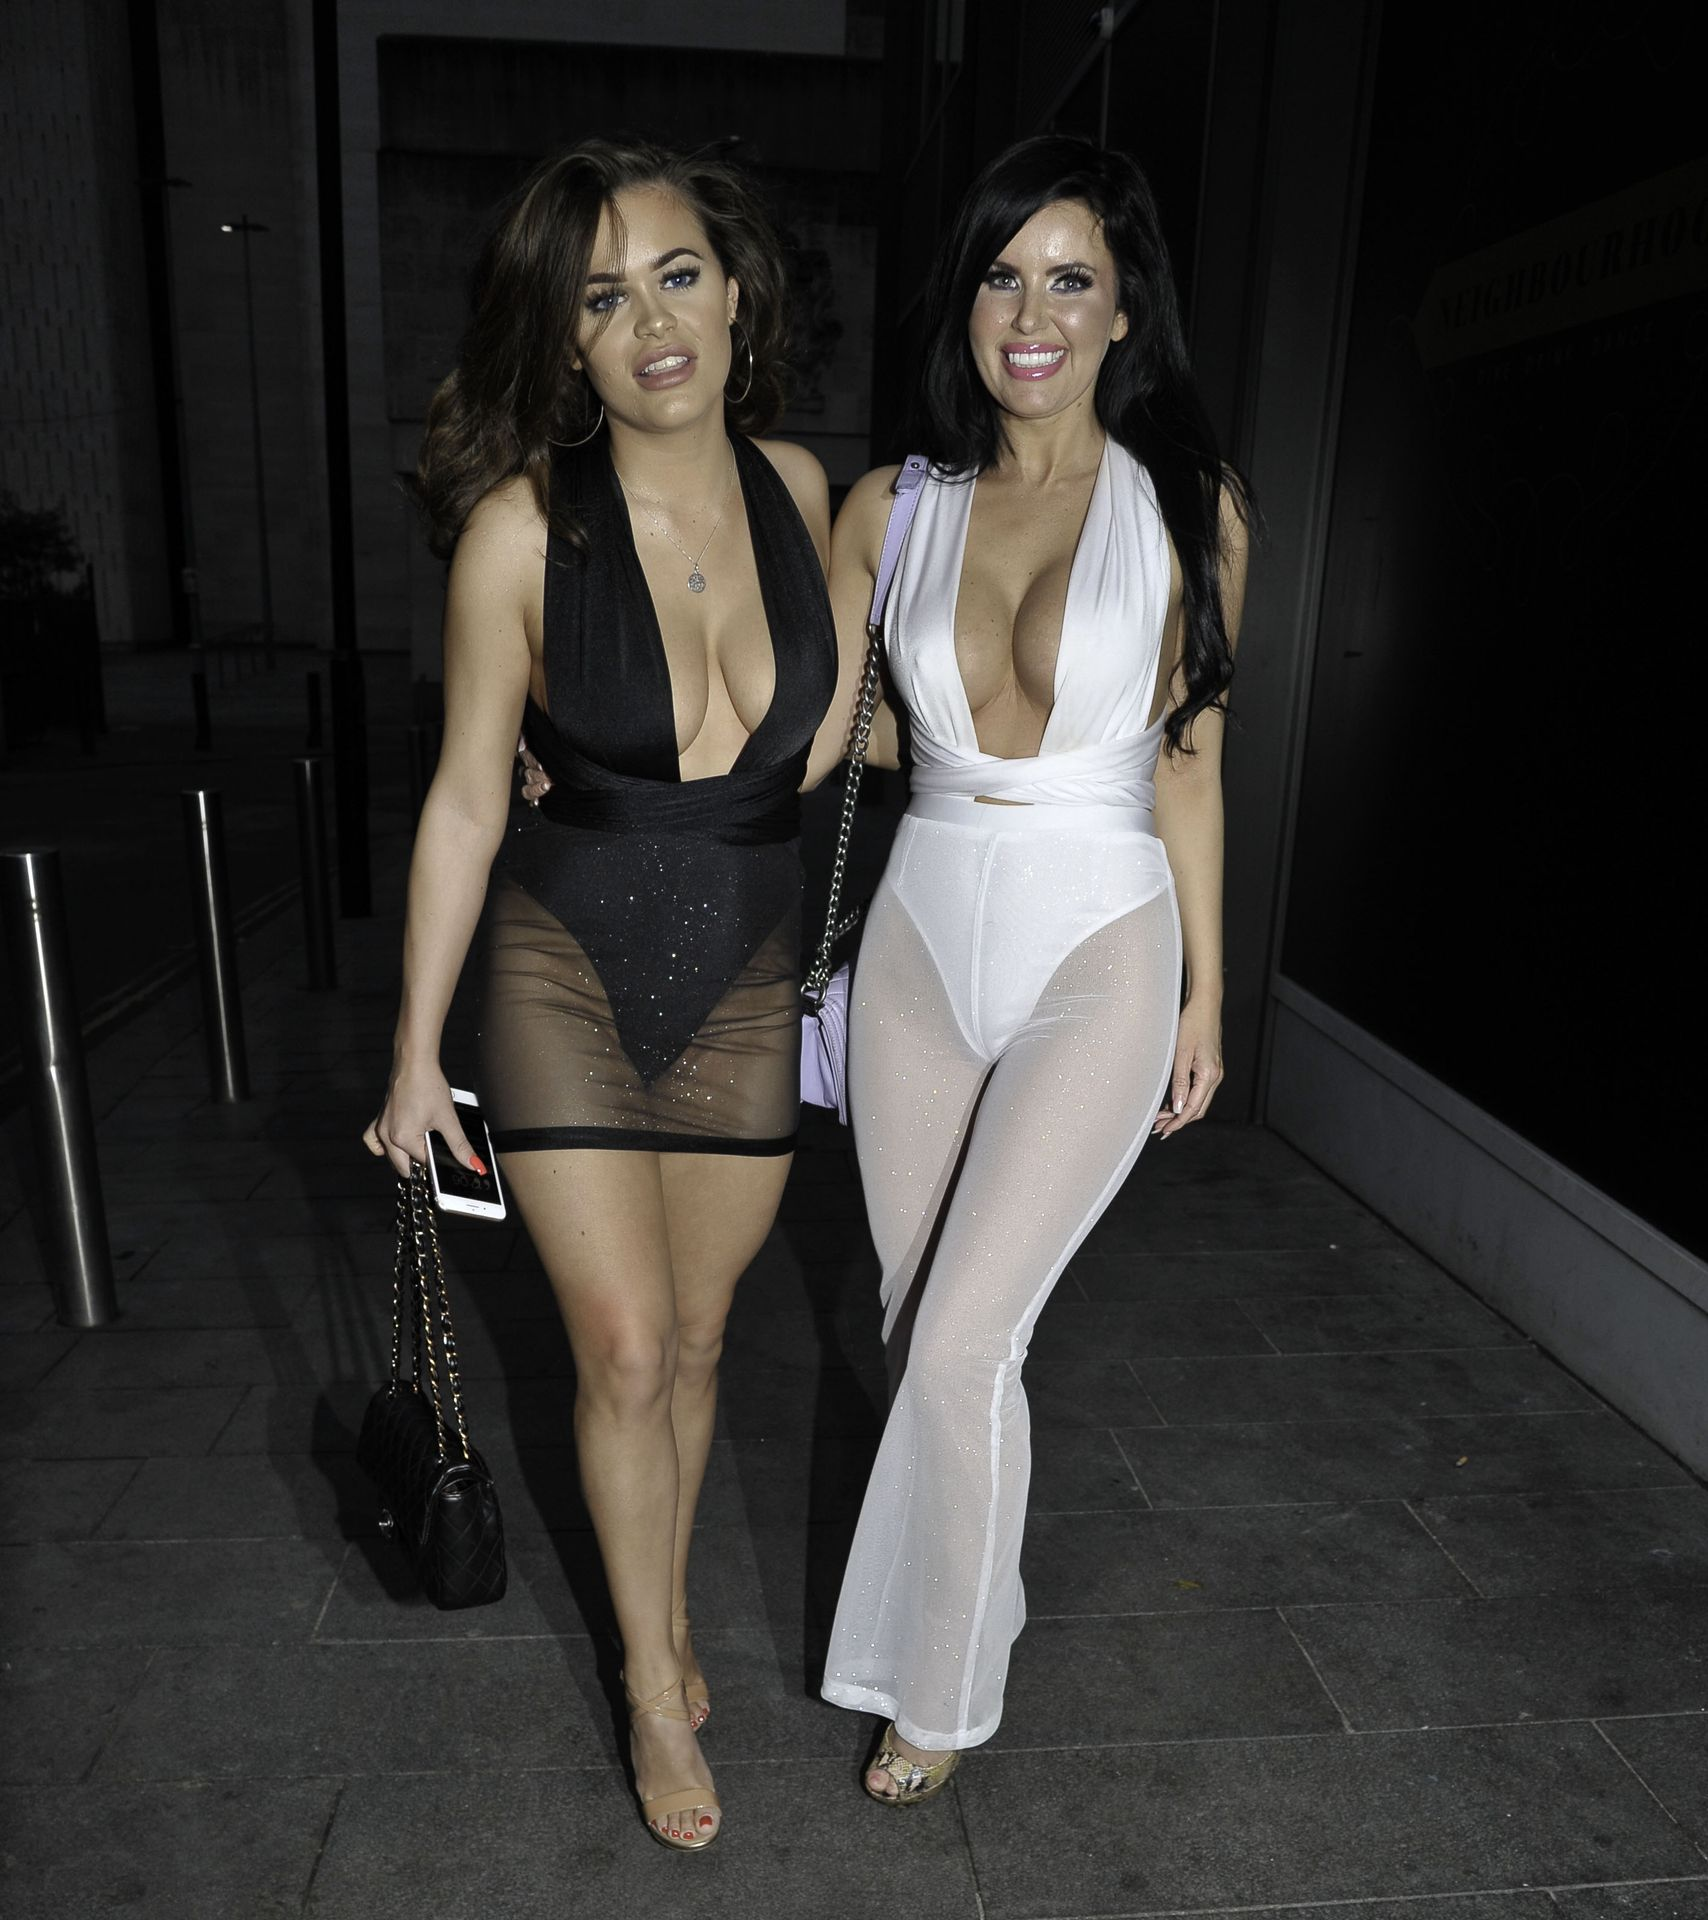 Rhianne Saxby & Sarah Longbottom Look Hot In Manchester 0017